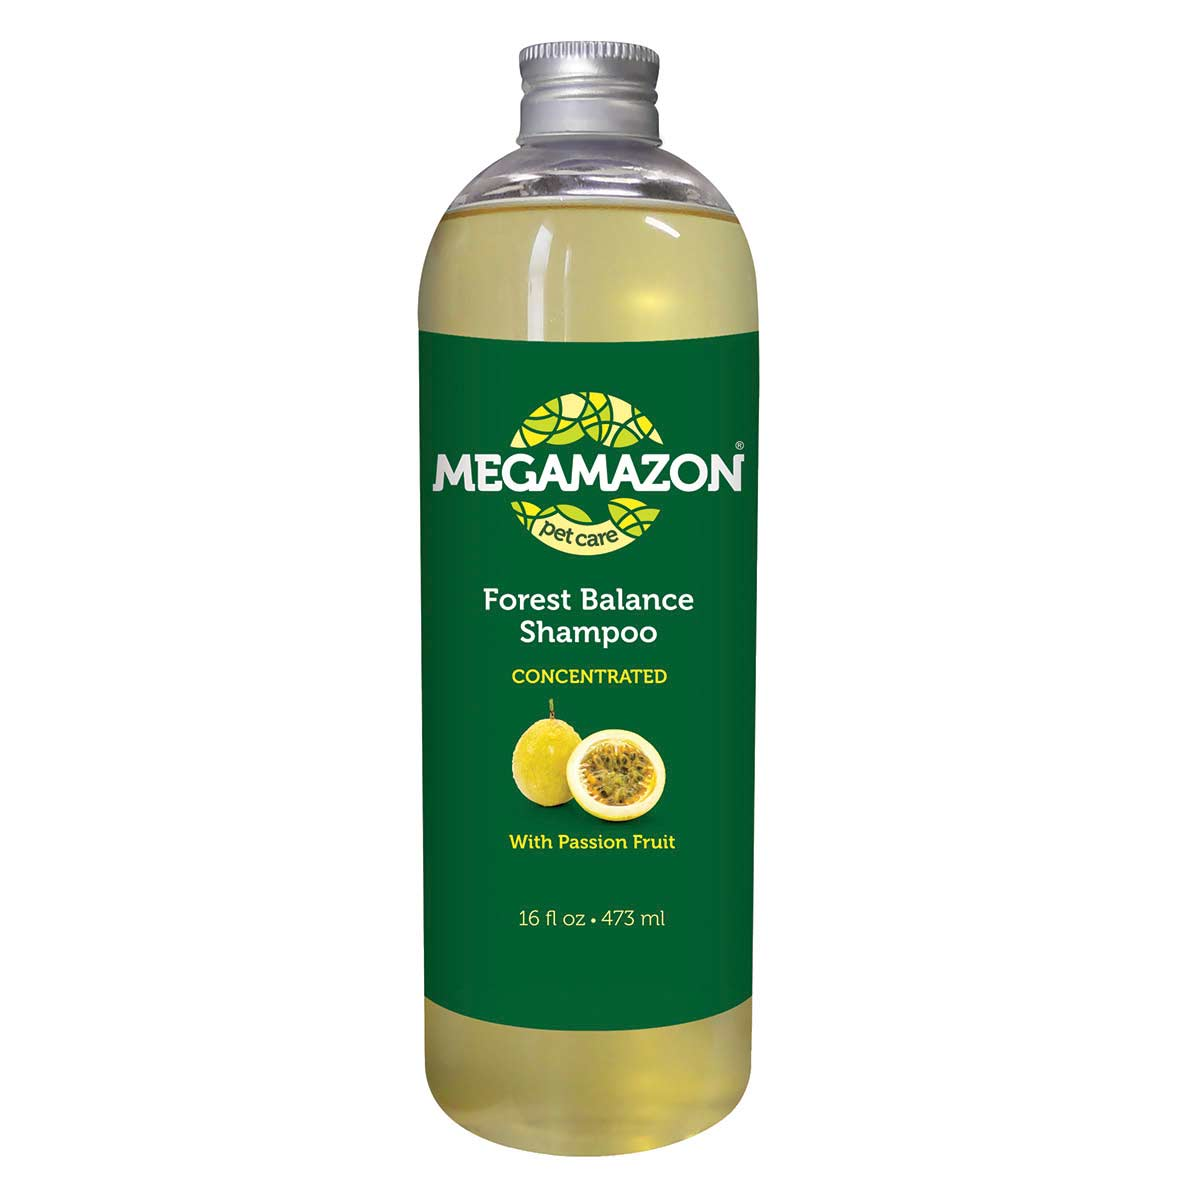 Buy Megamazon Forest Balance Pet Shampoo 16 oz